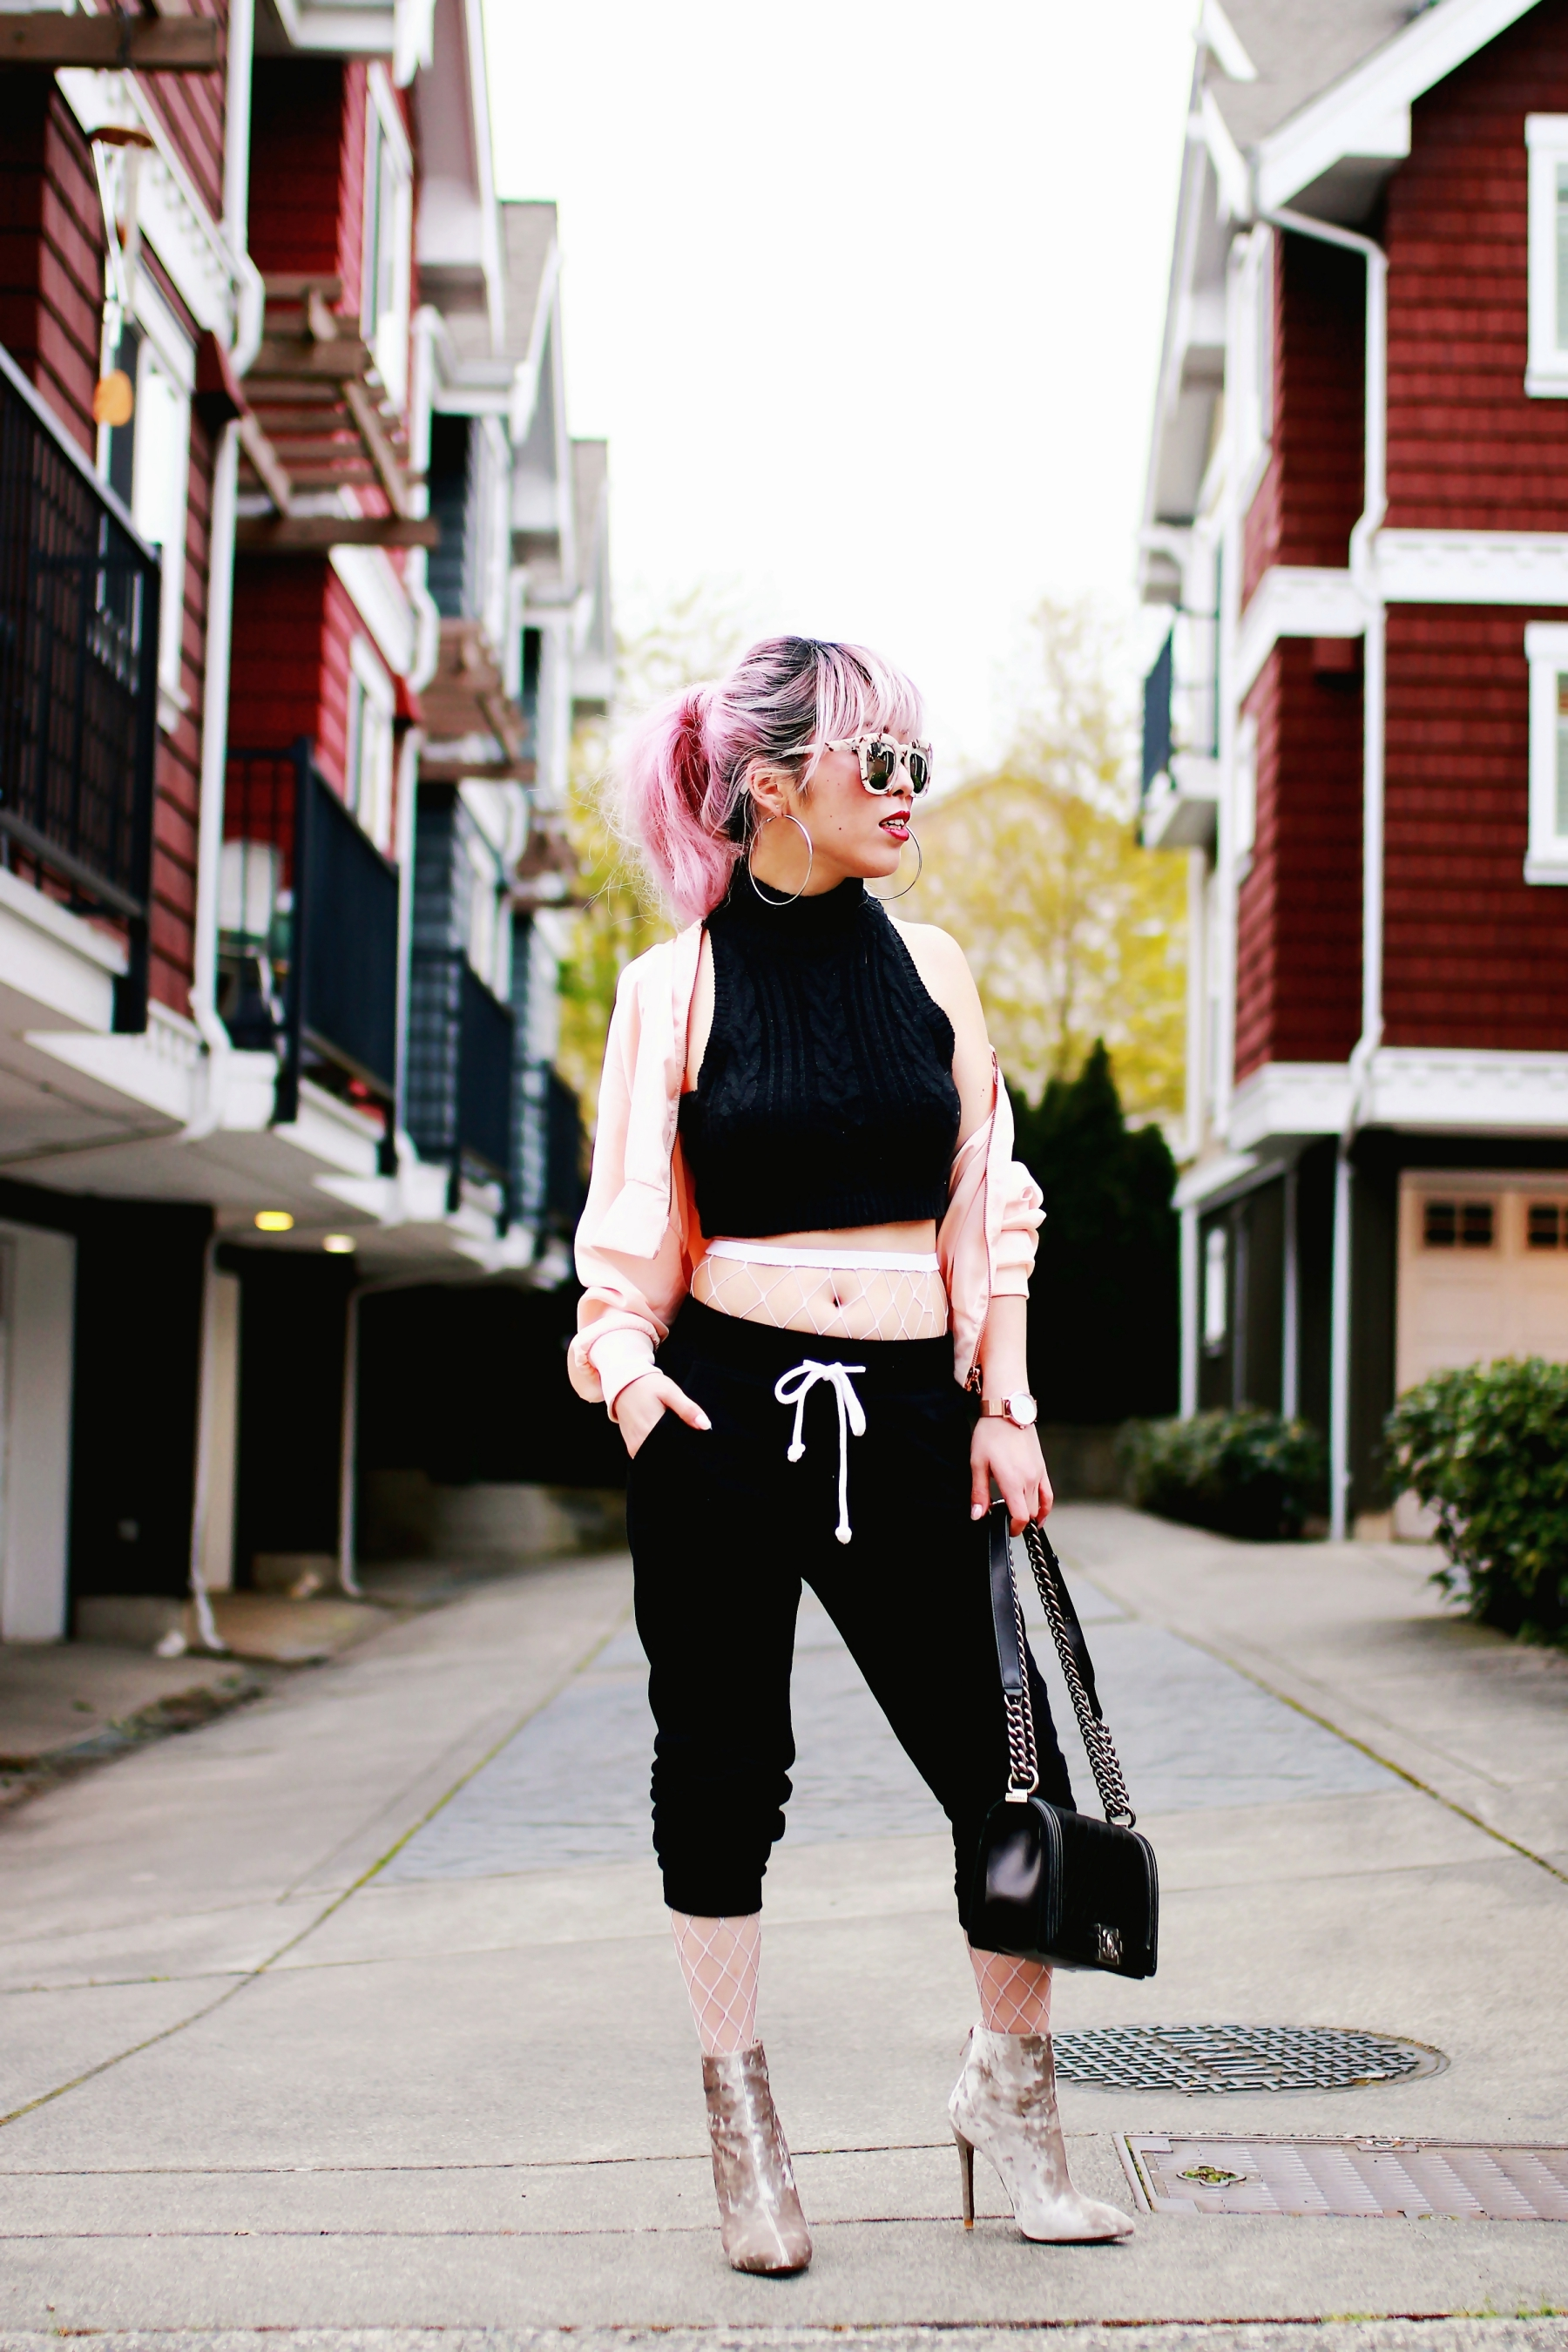 Zara Blush Silk Bomber Jacket_Missguided mock neck Crop top_ASOS fishnet tights_H&M sweatpants_Public Desire Boots_Chanel Bag_L'Oreal Red Lipstick_Free People Mirrored Sunglasses_Aikas Love Closet_Seattle Fashion Style Blogger_Pink Hair 7